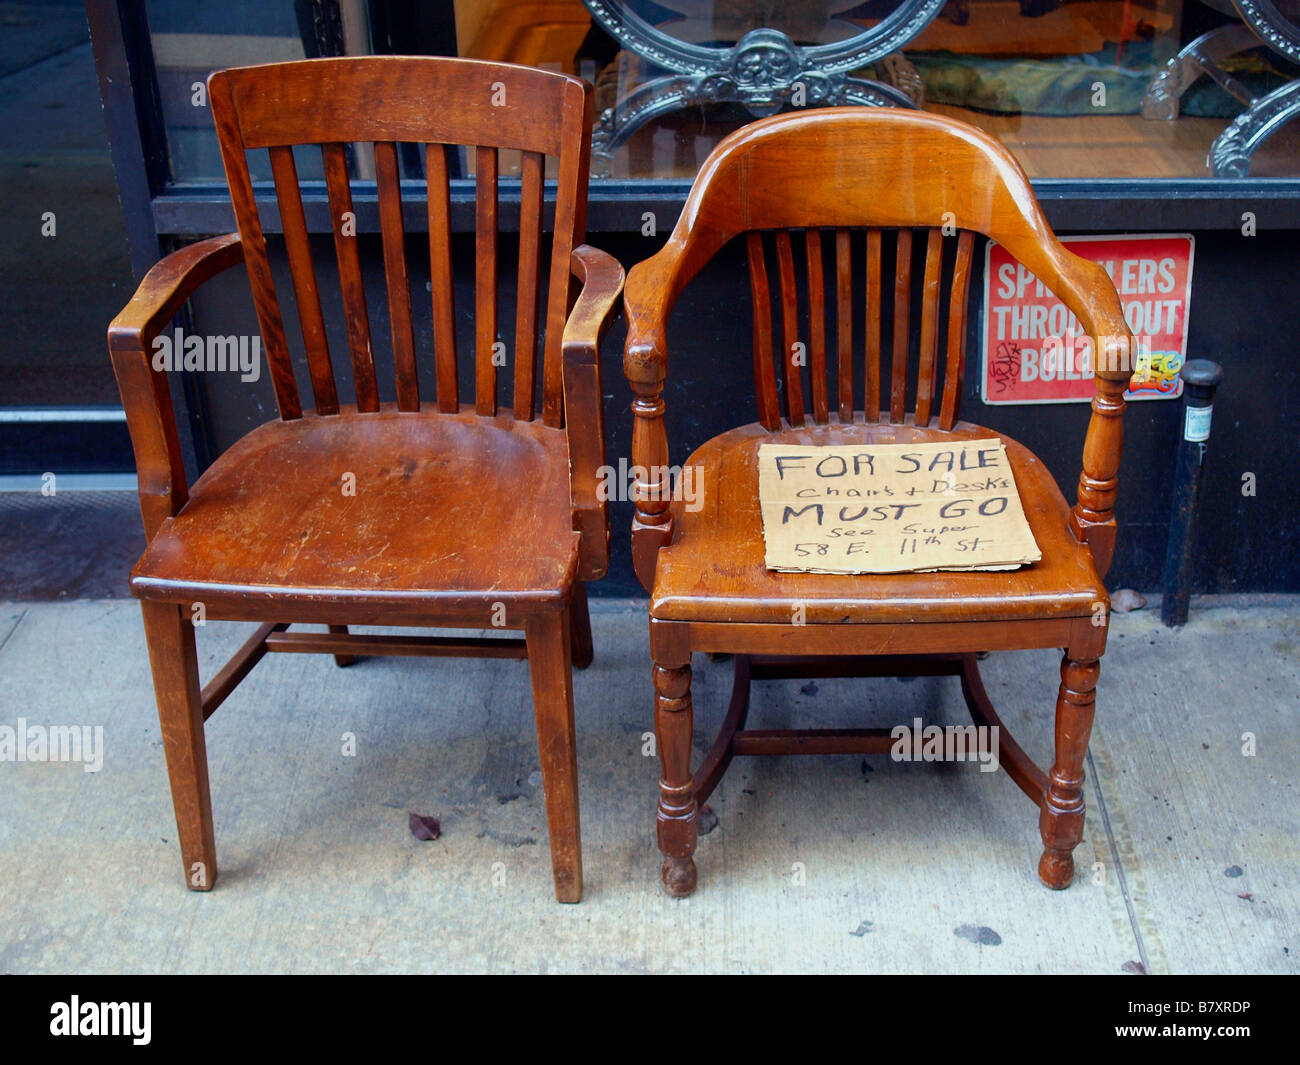 old wood chairs harvest table two wooden on a city sidewalk holding handwritten stock cardboard for sale sign